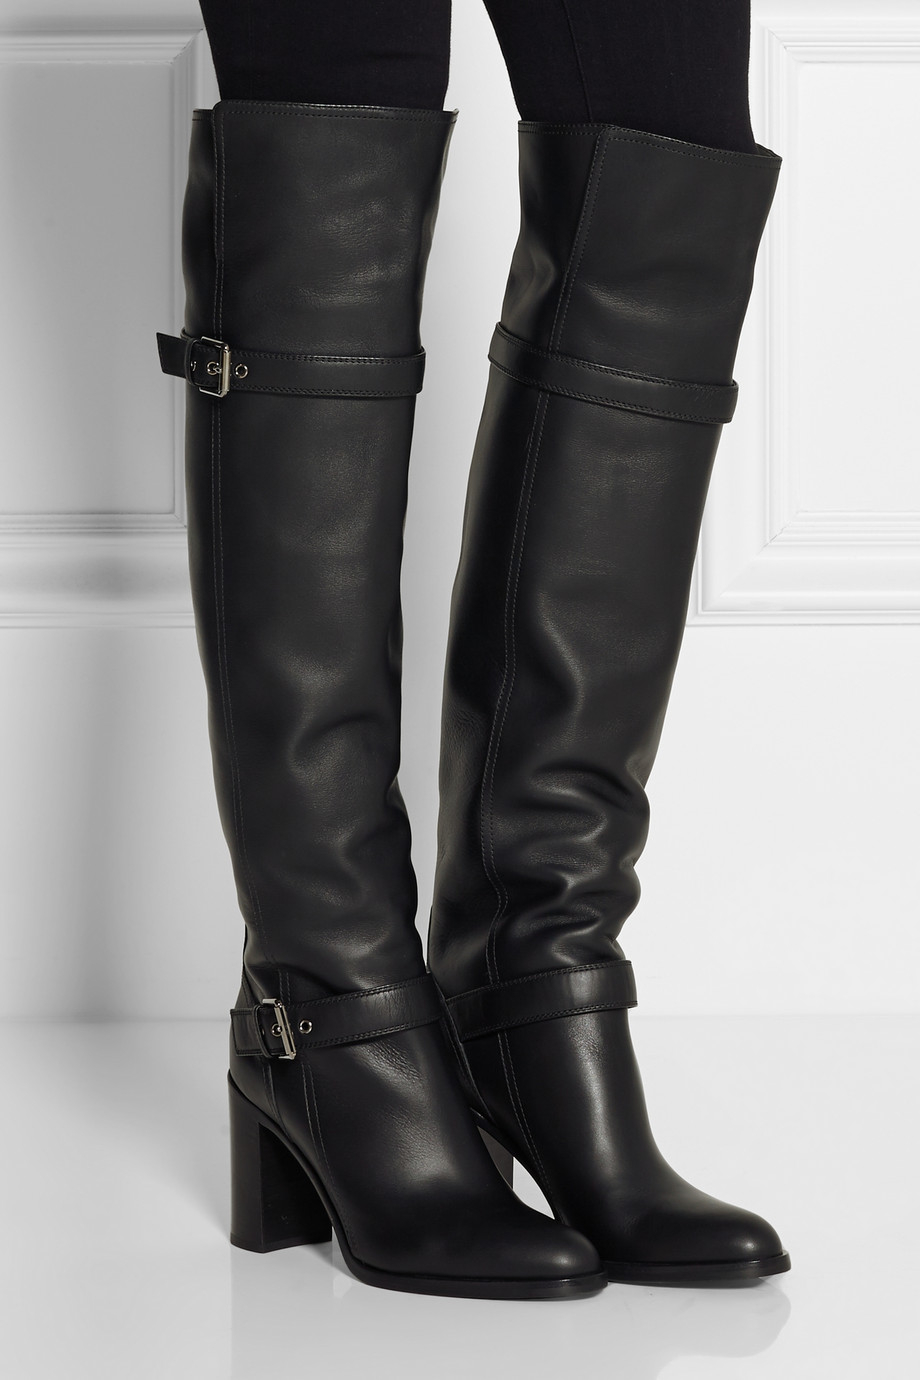 Over The Knee Black Leather Boots g4nTQUop